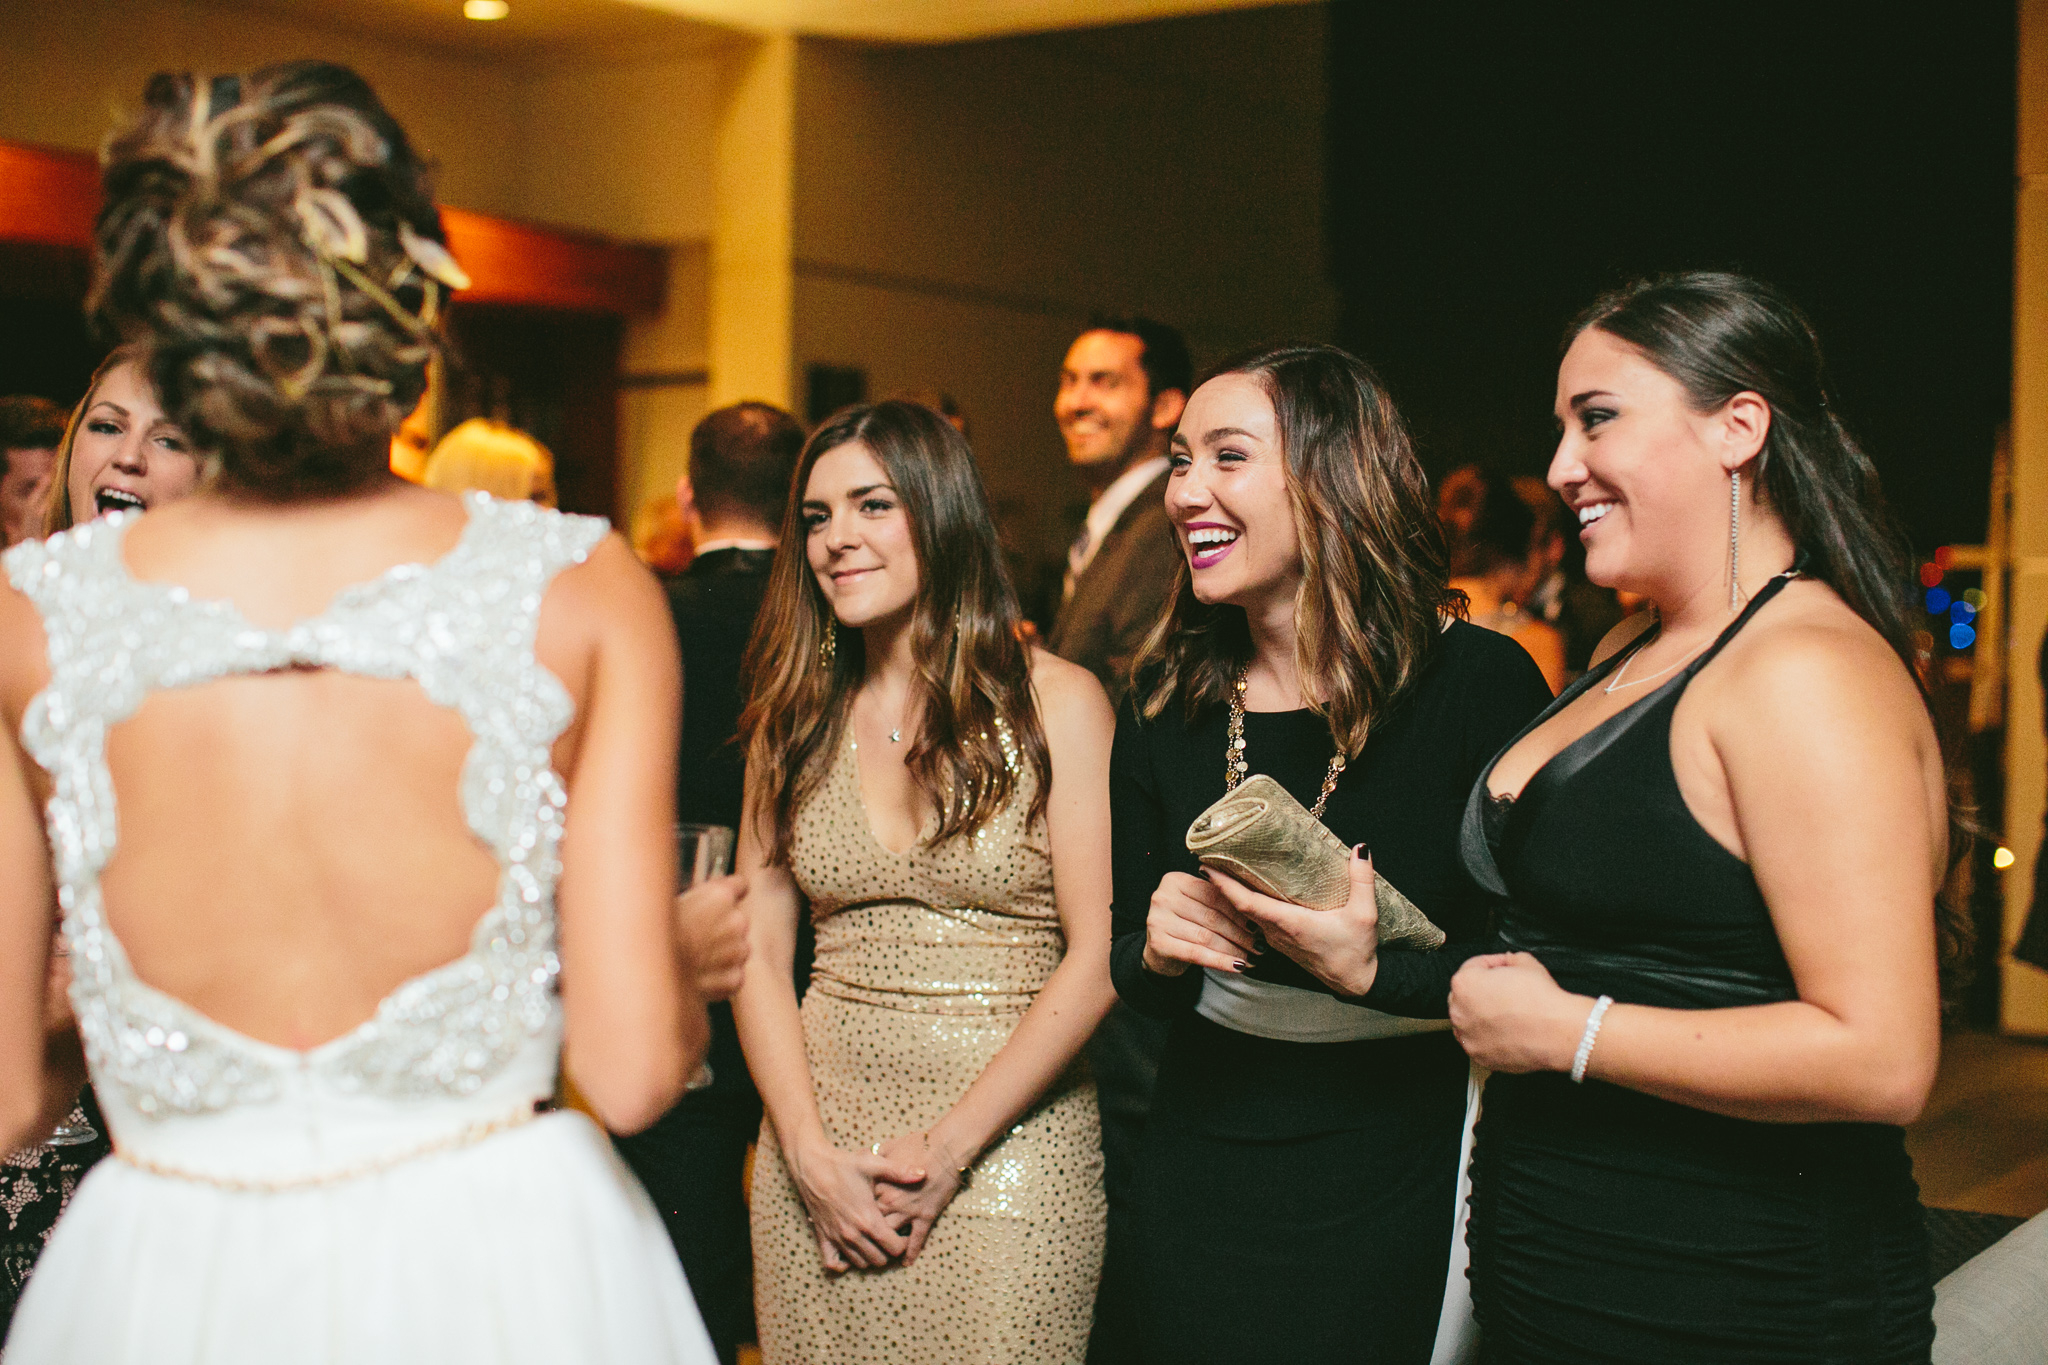 Brianna+Jeff-WEDDING_KellyBoitanoPhotography20151219_0139